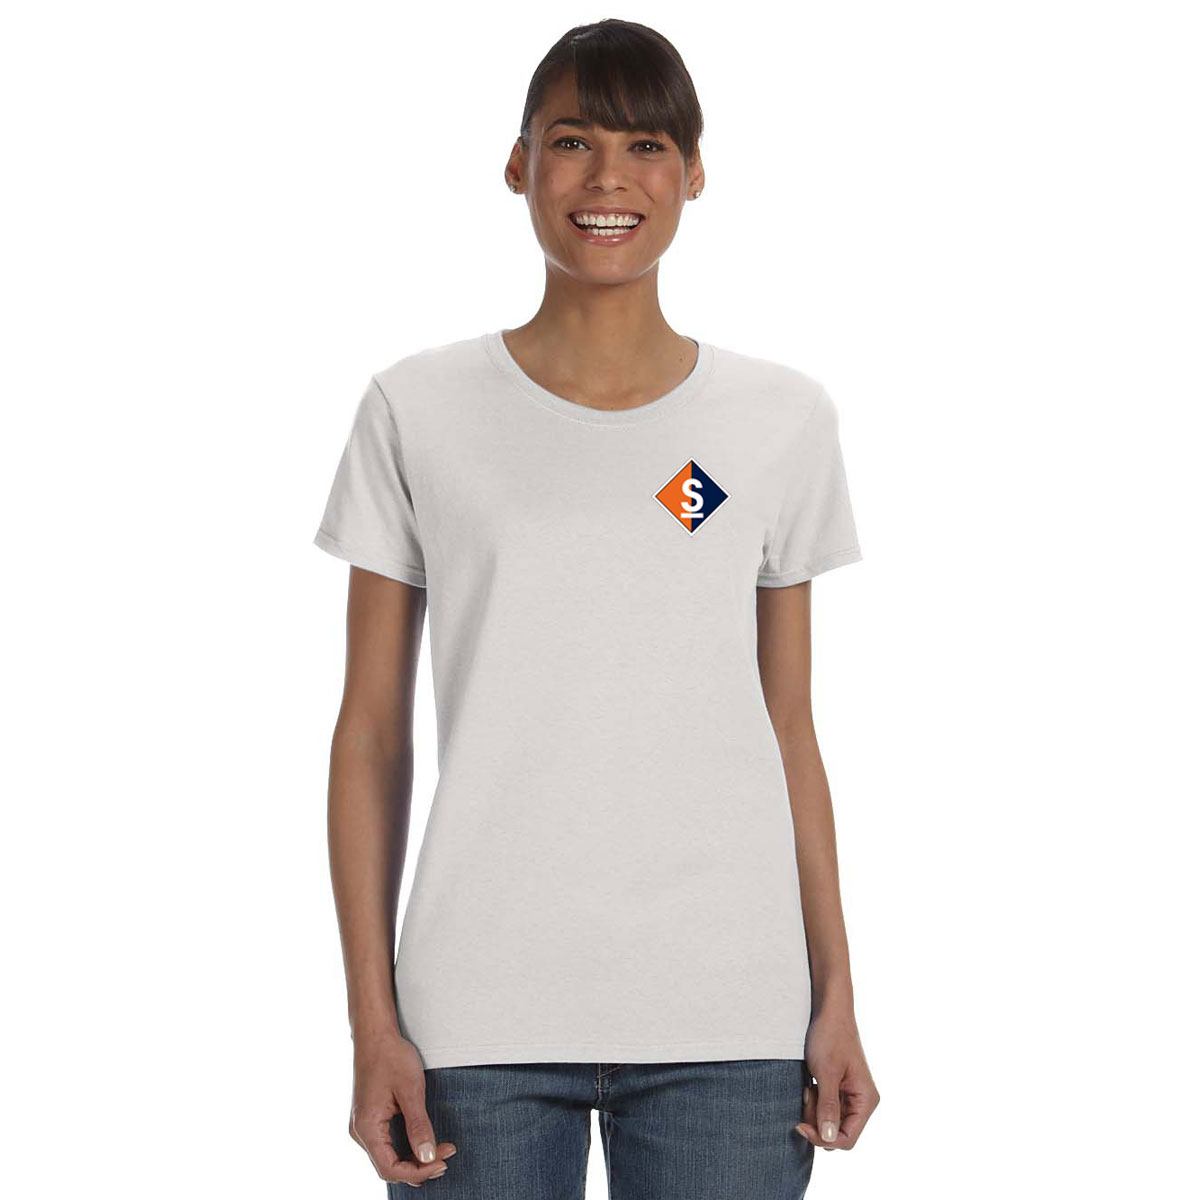 SAIL MAINE - Women's S/S TECH TEE